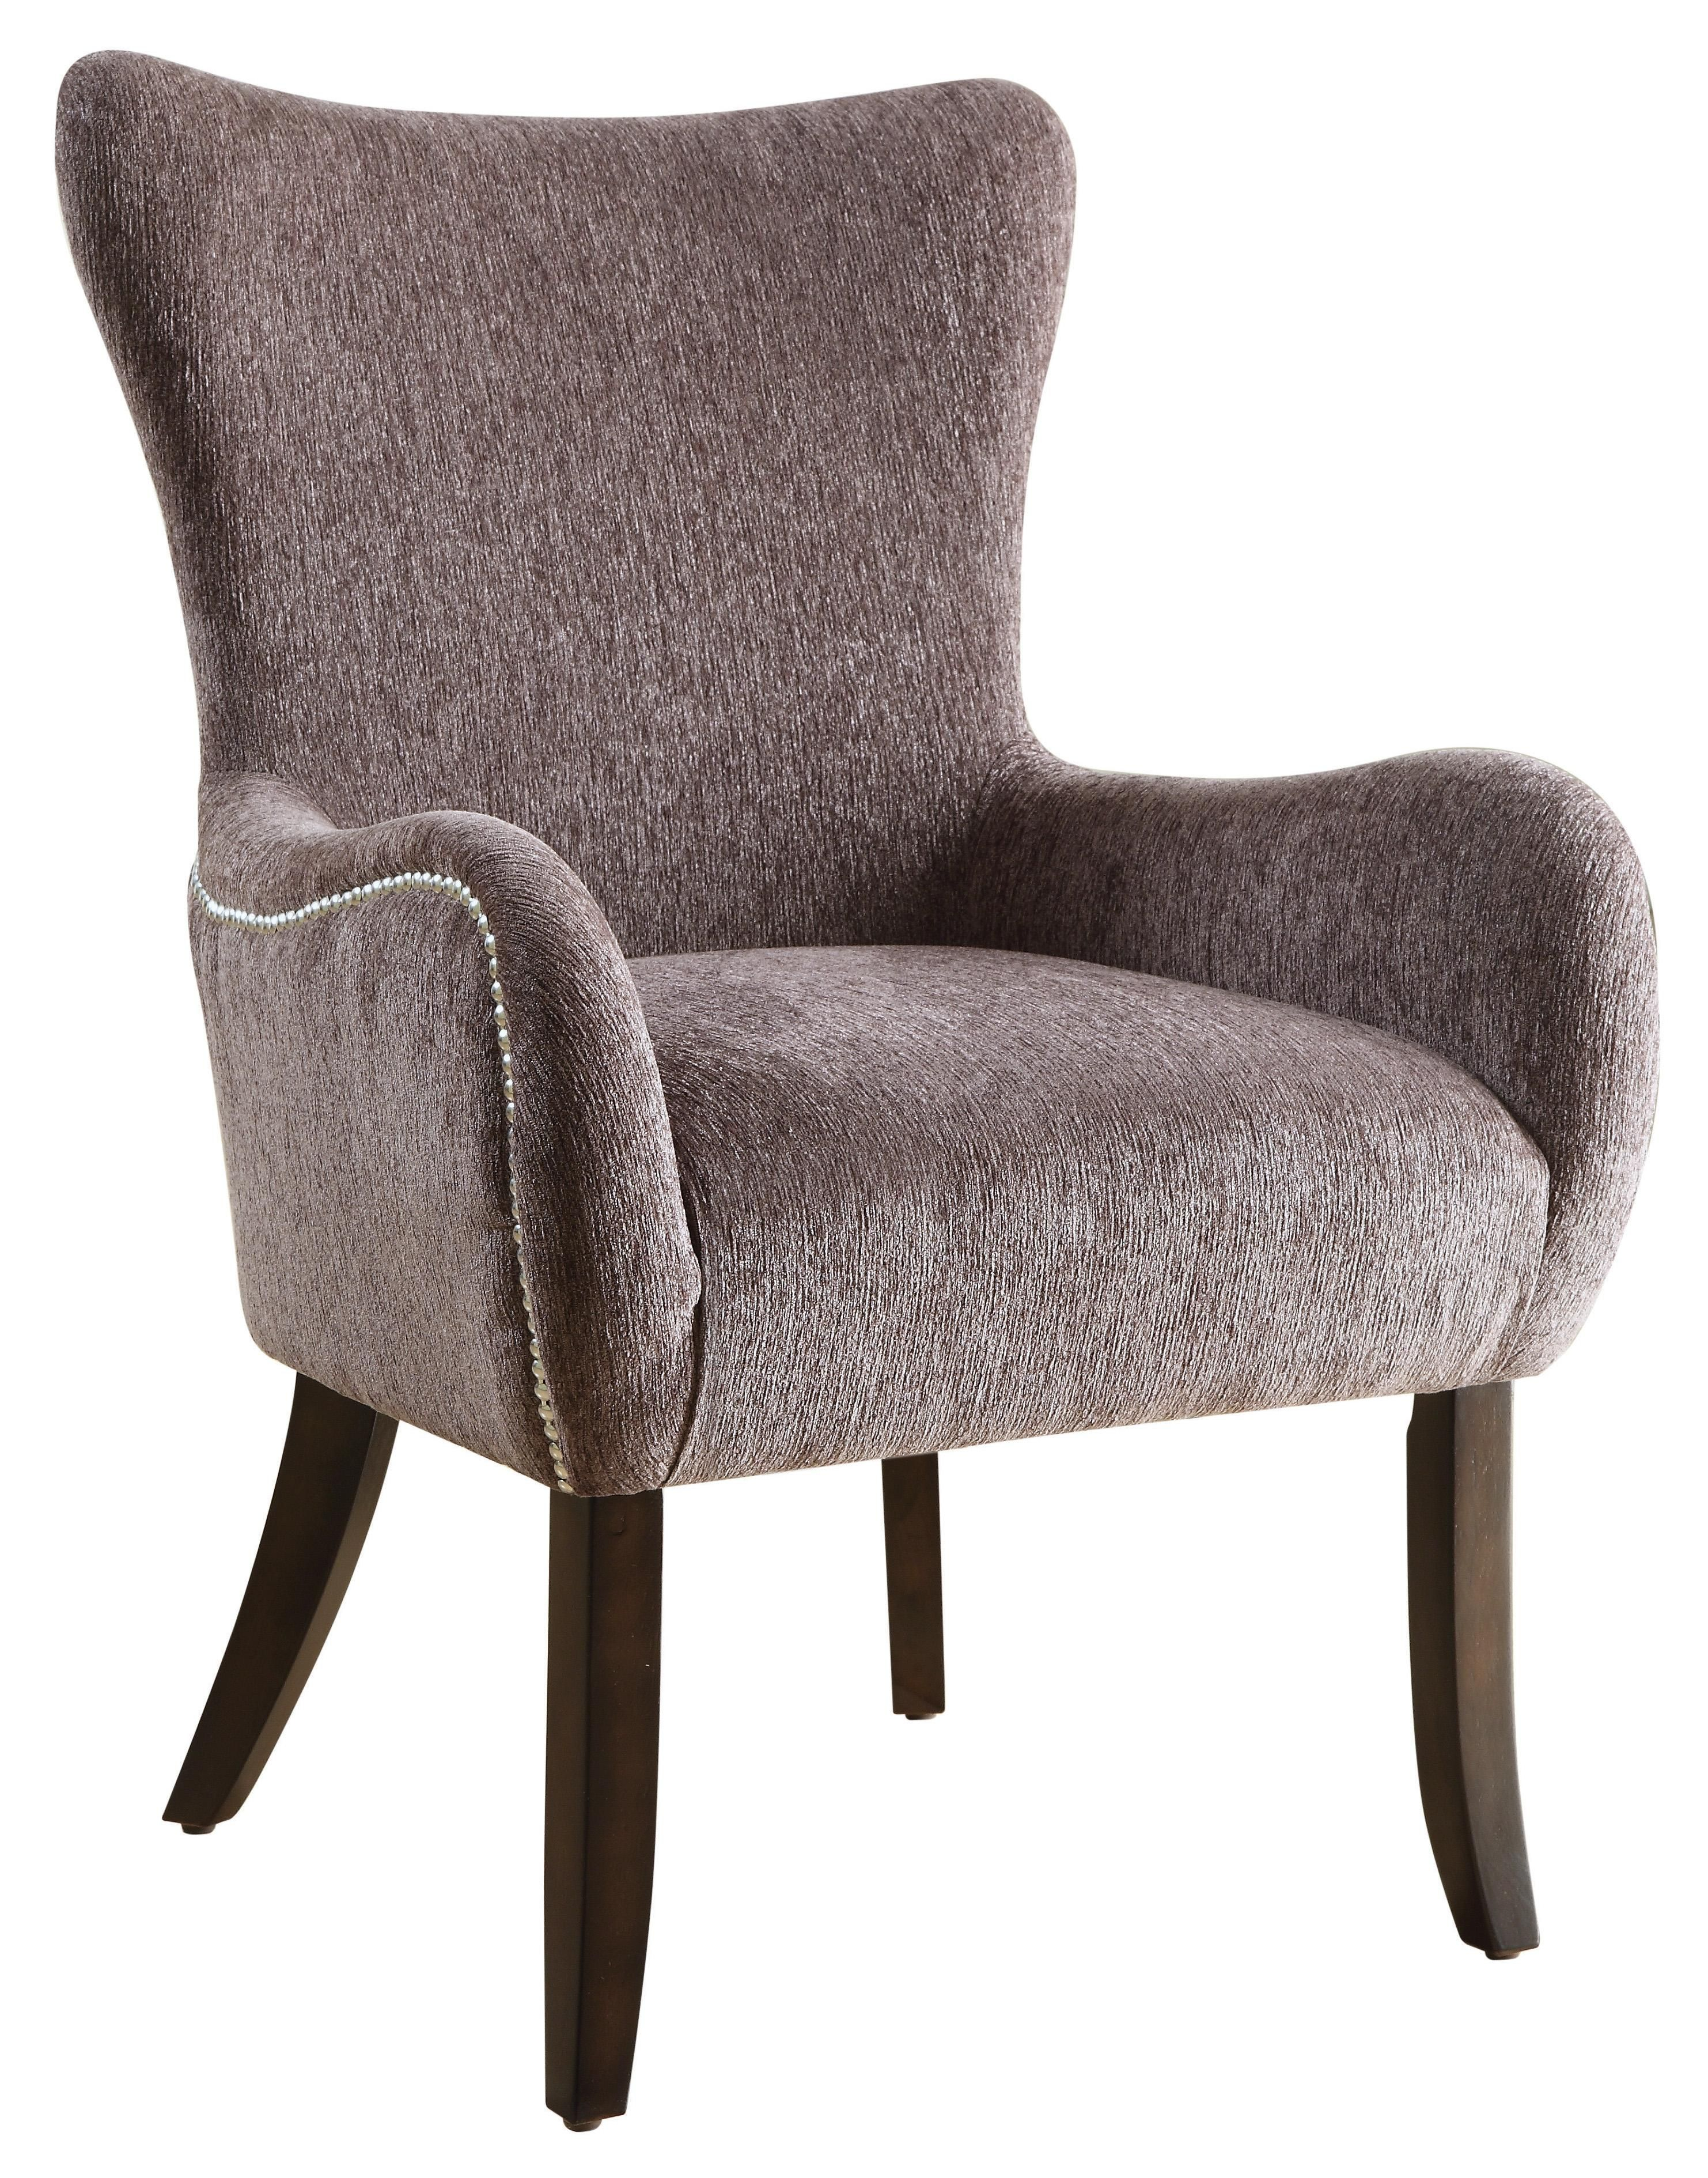 purple velvet size armchair rooms unusual go for full high back where used chair to of brown with accent arms room buy chairs side living